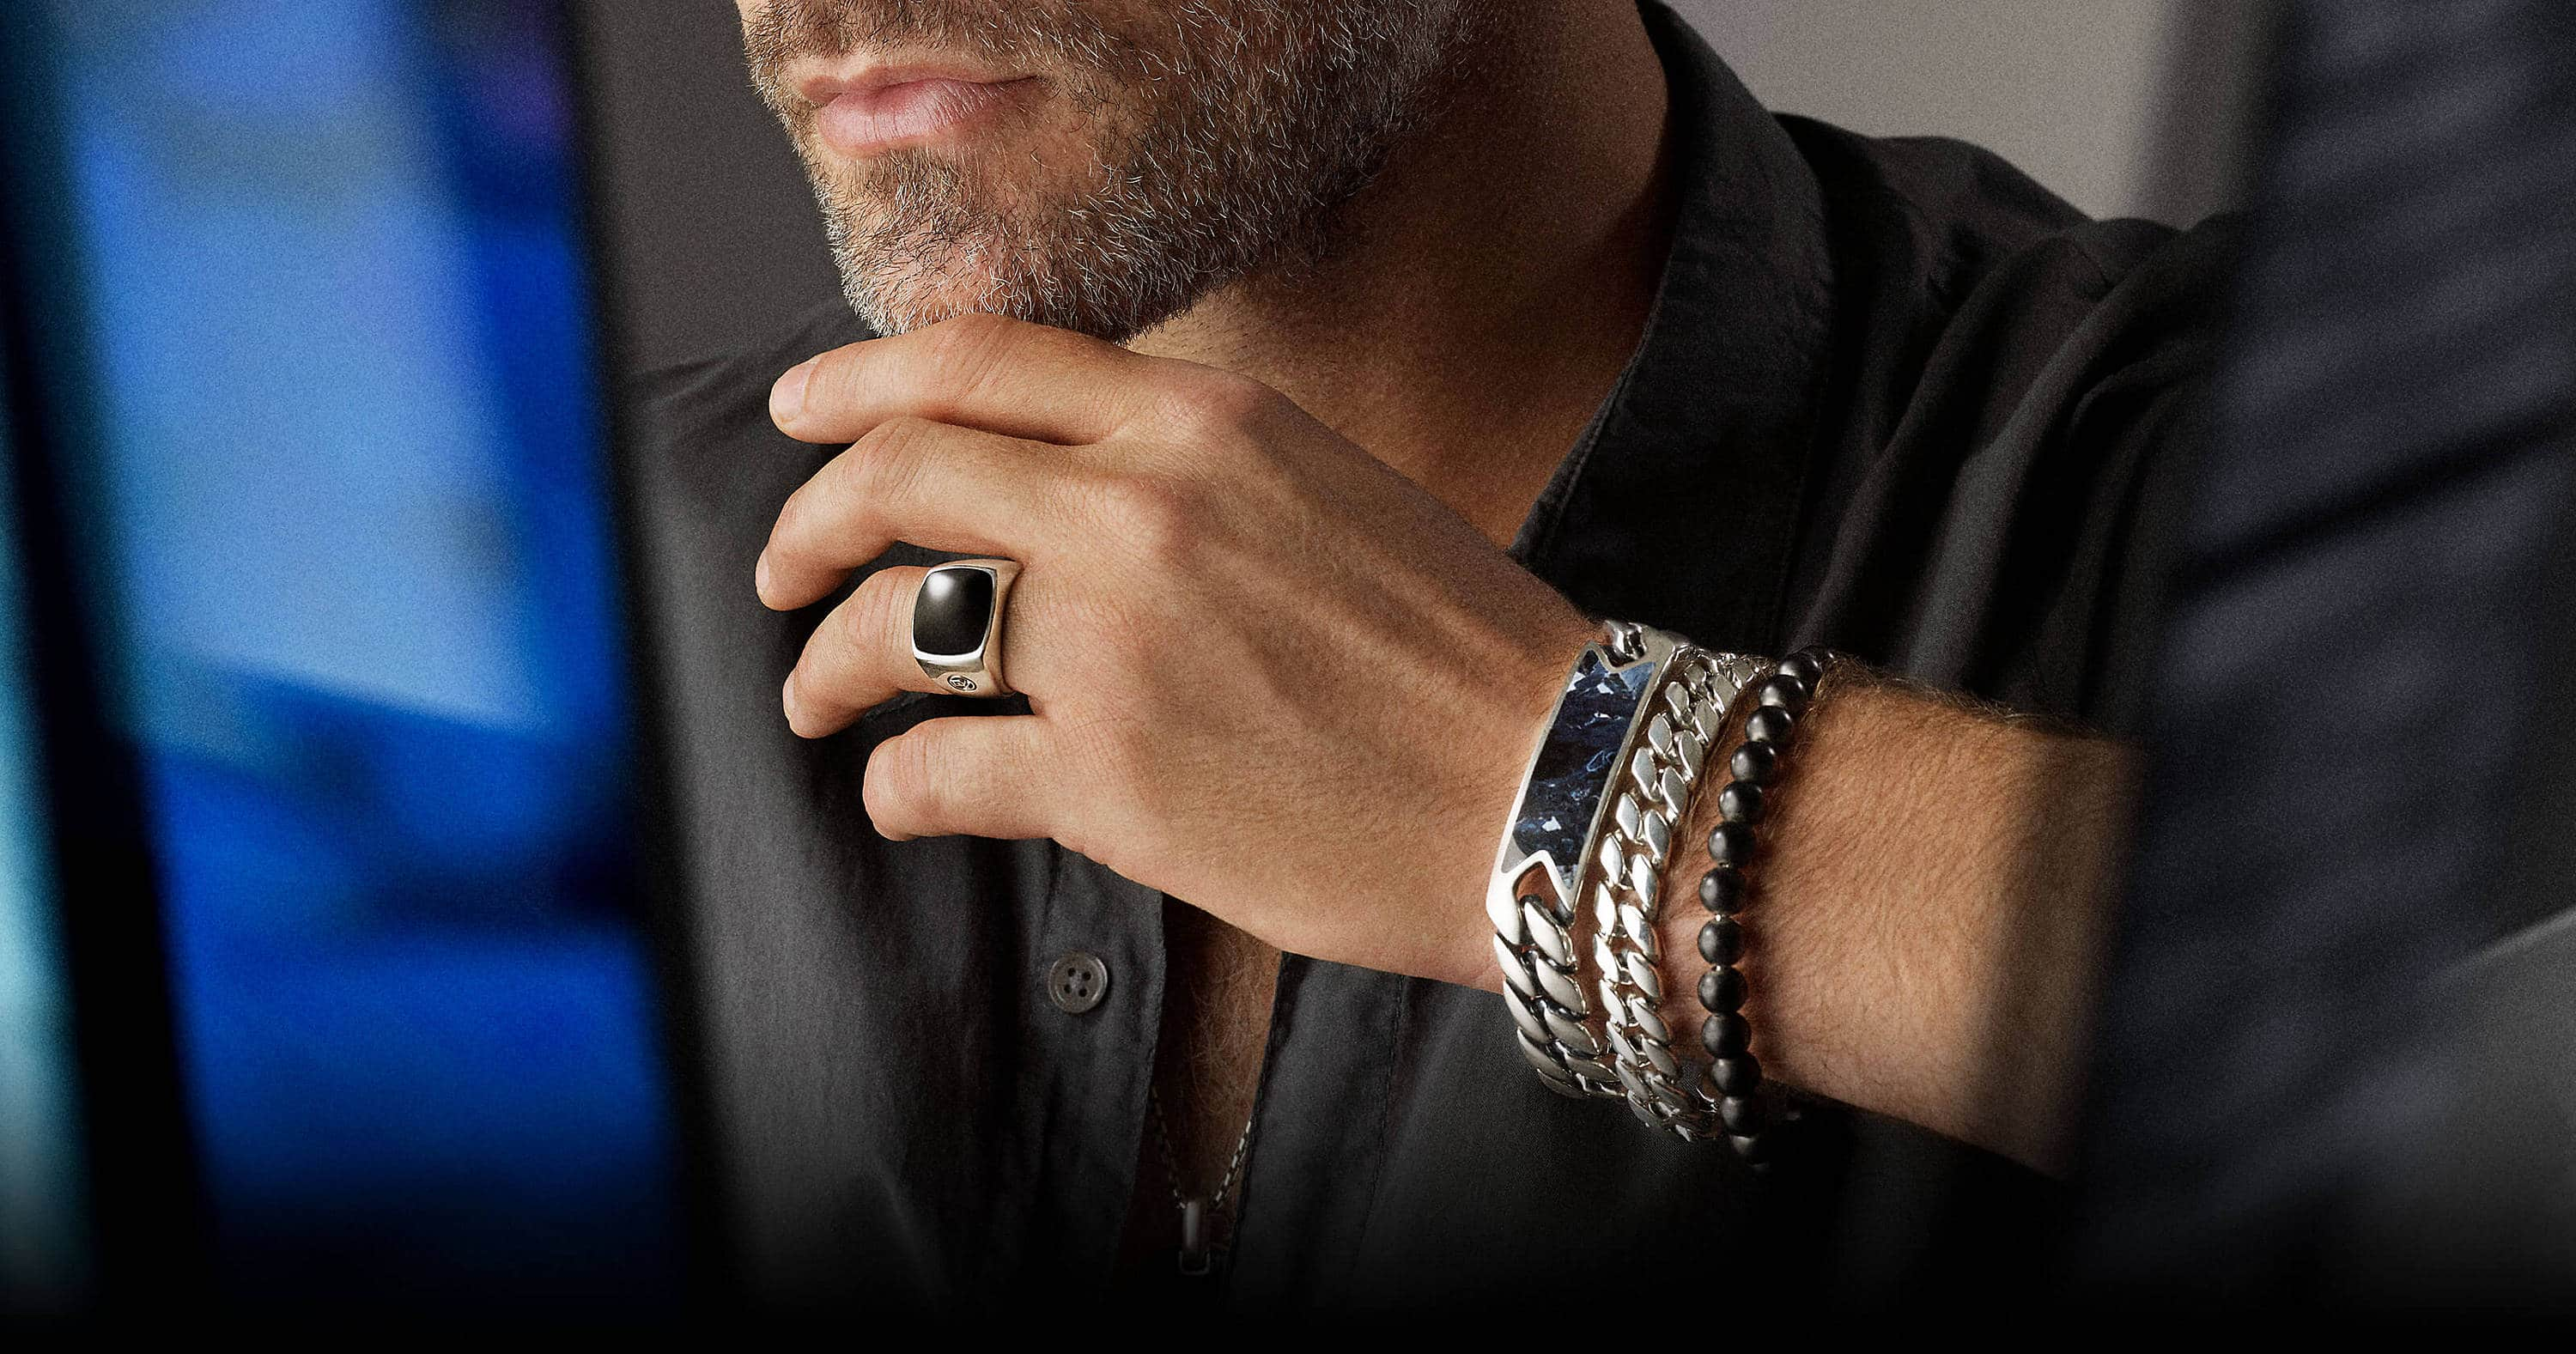 A color photograph shows a close-up and cropped shot of a male model's chin, neck, left hand and wrist with collaged blue-and-black reflections of a stained glass panel by Brian Clarke. The model wears a David Yurman Exotic Stone tag, signet ring, ID bracelet, Chain bracelet and box-chain necklace, and a Spiritual Beads bracelet with a grey button-down shirt. The jewelry is crafted from sterling silver with or without black onyx or pietersite